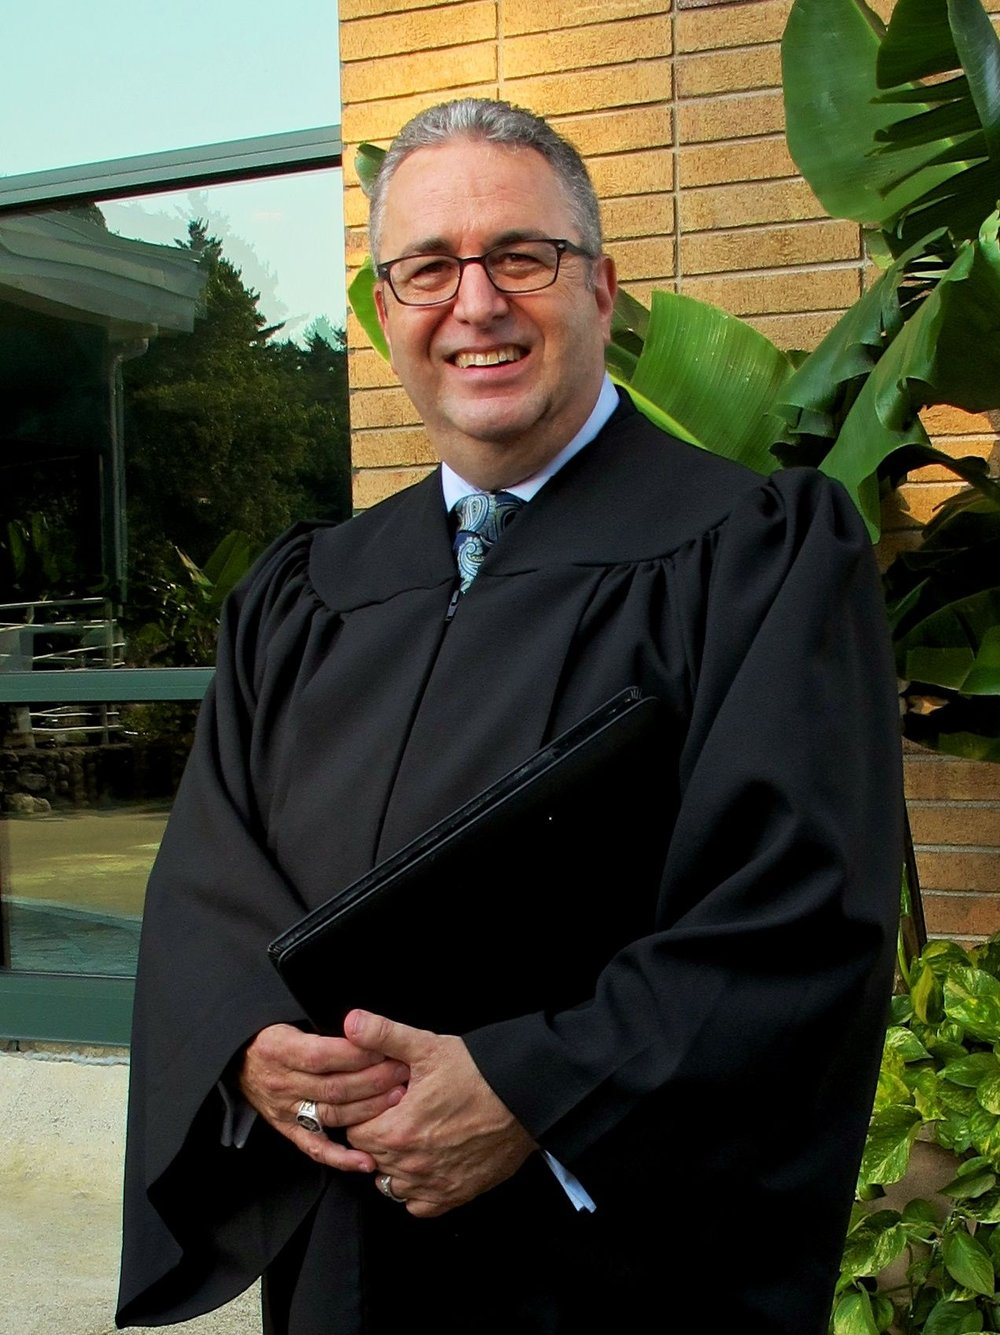 Justice Martin Rich